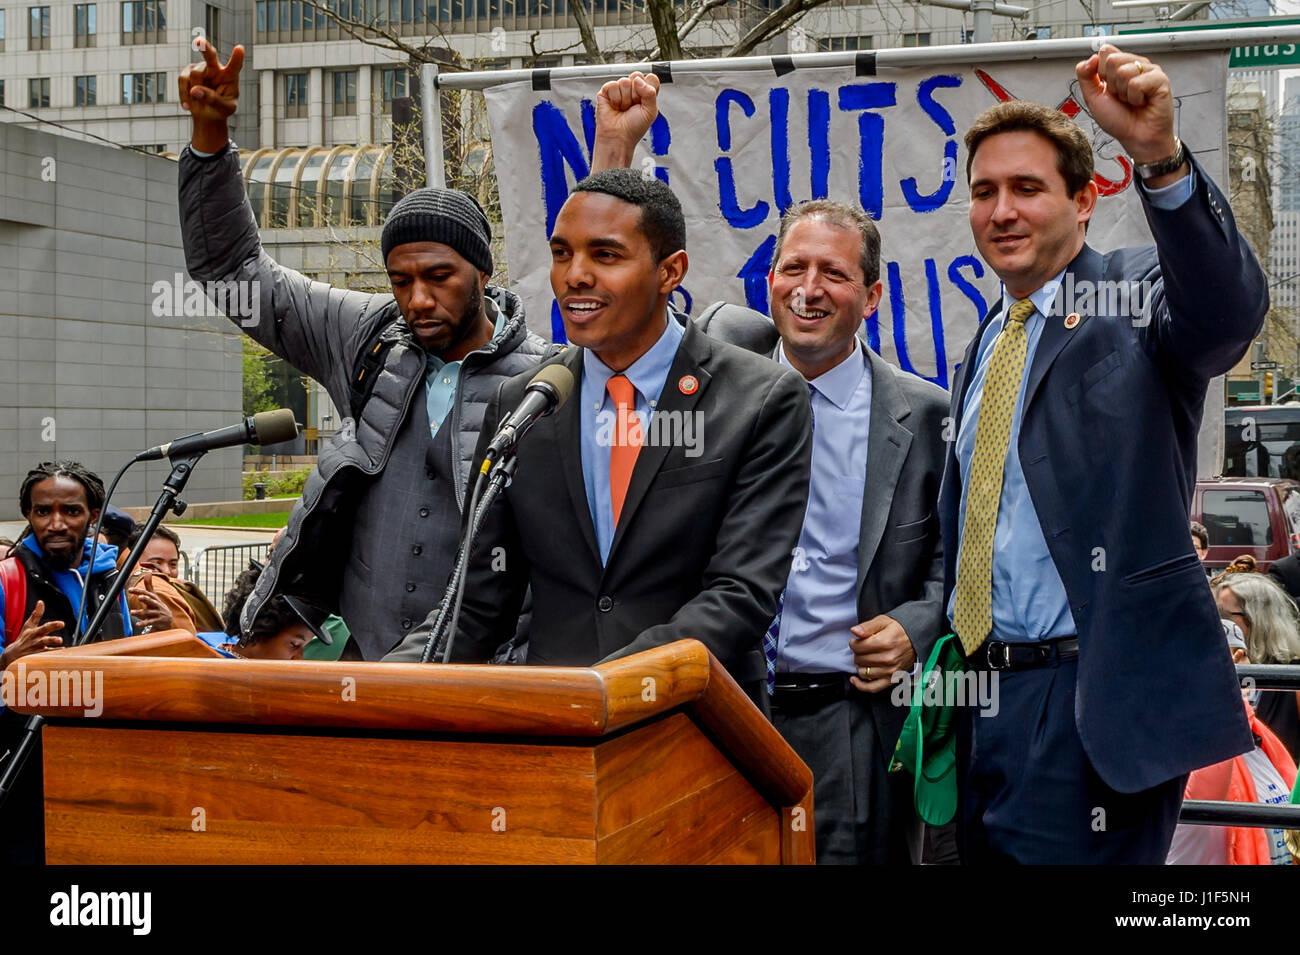 New York, USA . 20th Apr, 2017. New York City Councilmembers addressing the crowd - In an act of Peaceful Civil Stock Photo